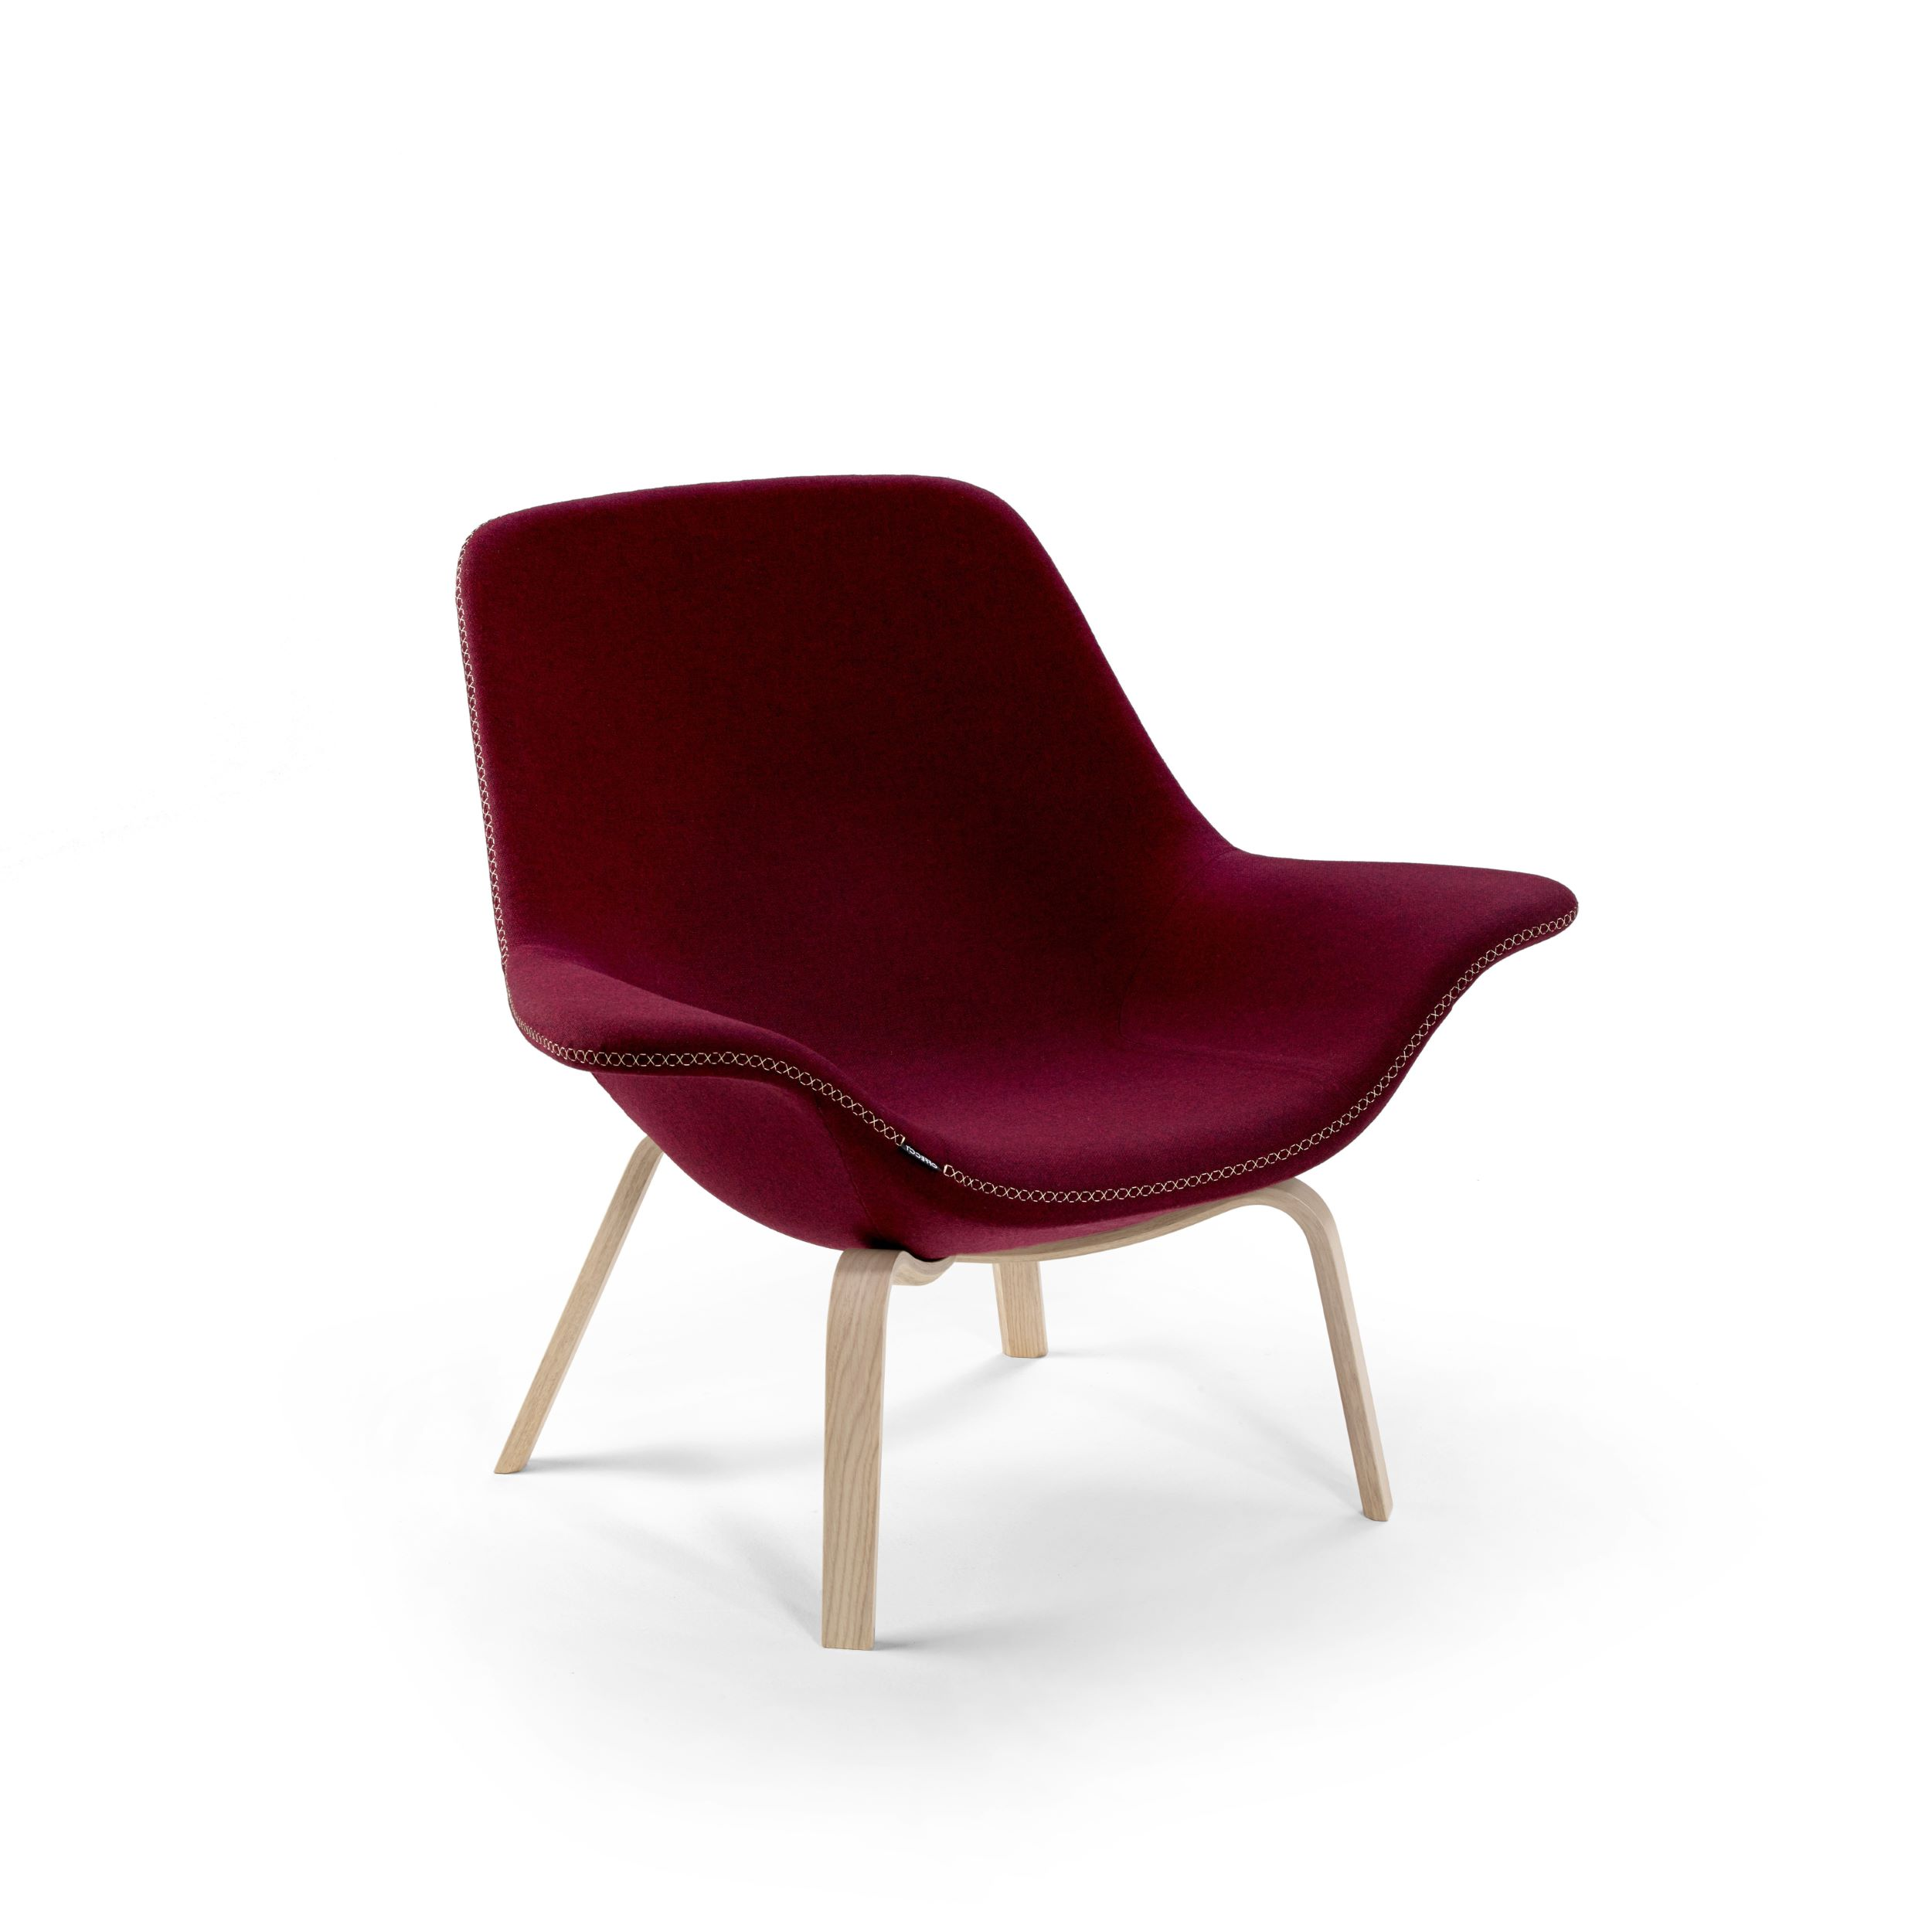 Tumblr Sessel Oyster Wood Low Easy Chair Design By Michael Sodeau Offecct